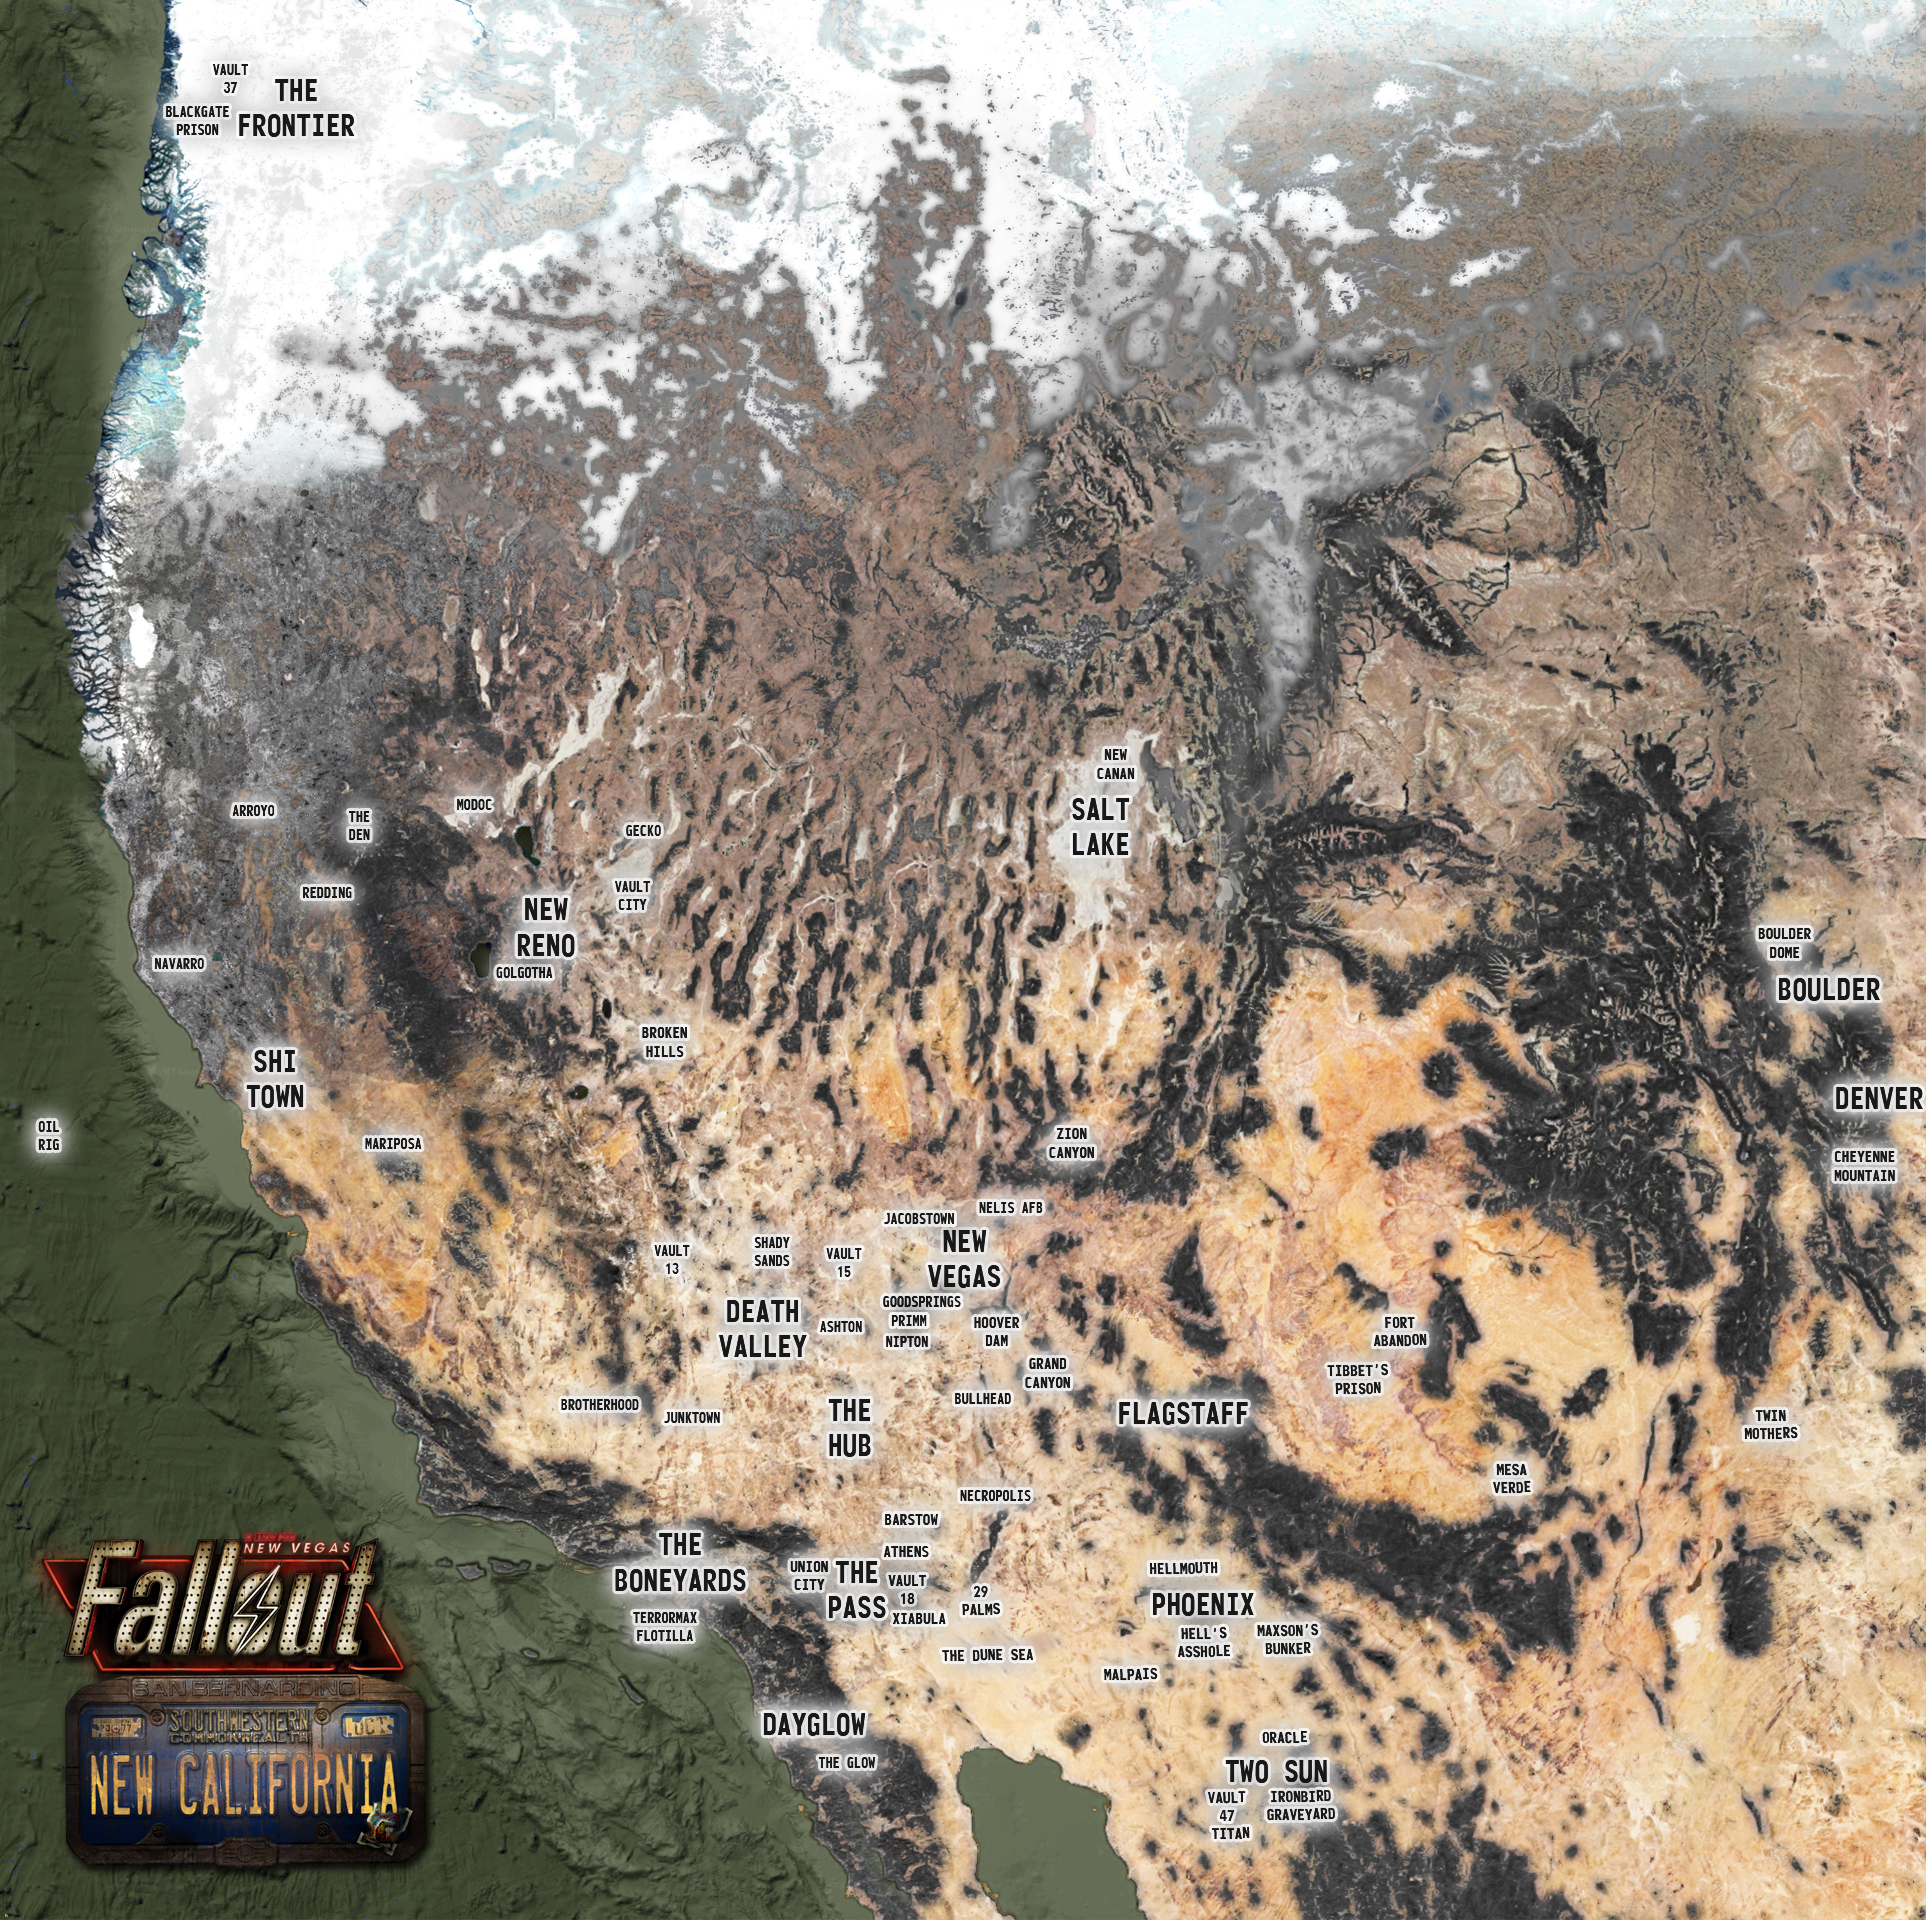 New Vegas World Map.Fallout World Map 2260 Image Fallout New California Mod For